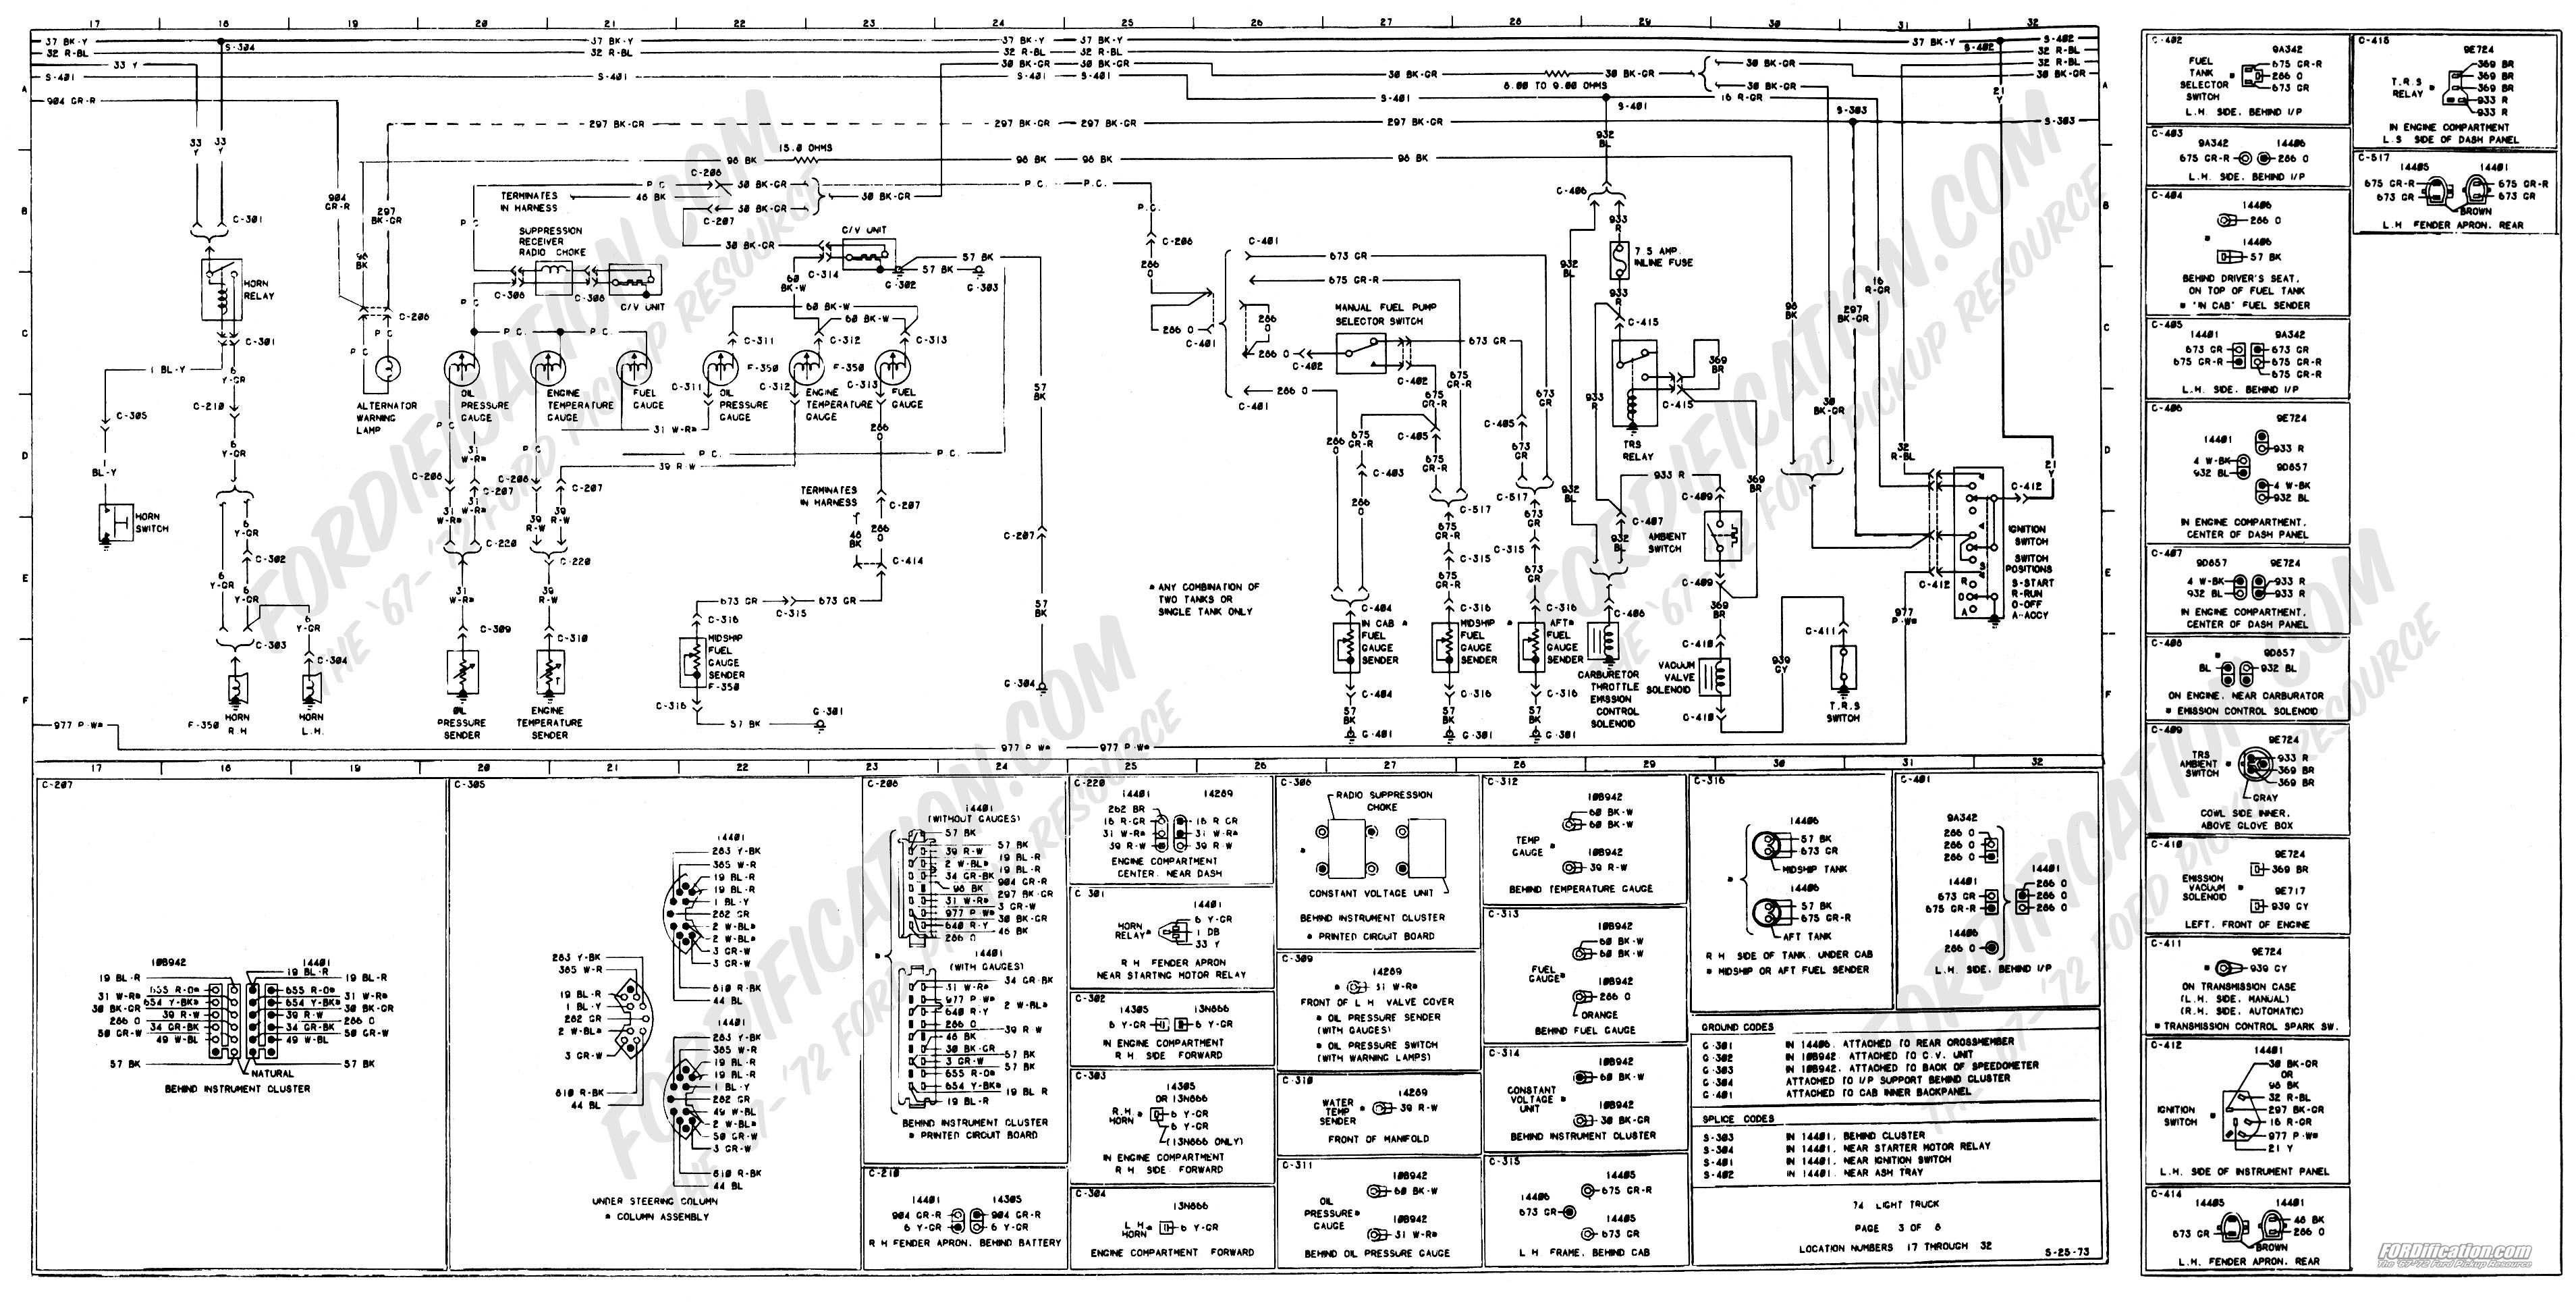 1990 ford 460 engine diagram 1973 1979 ford truck wiring diagrams amp schematics 1990 ford explorer engine diagram